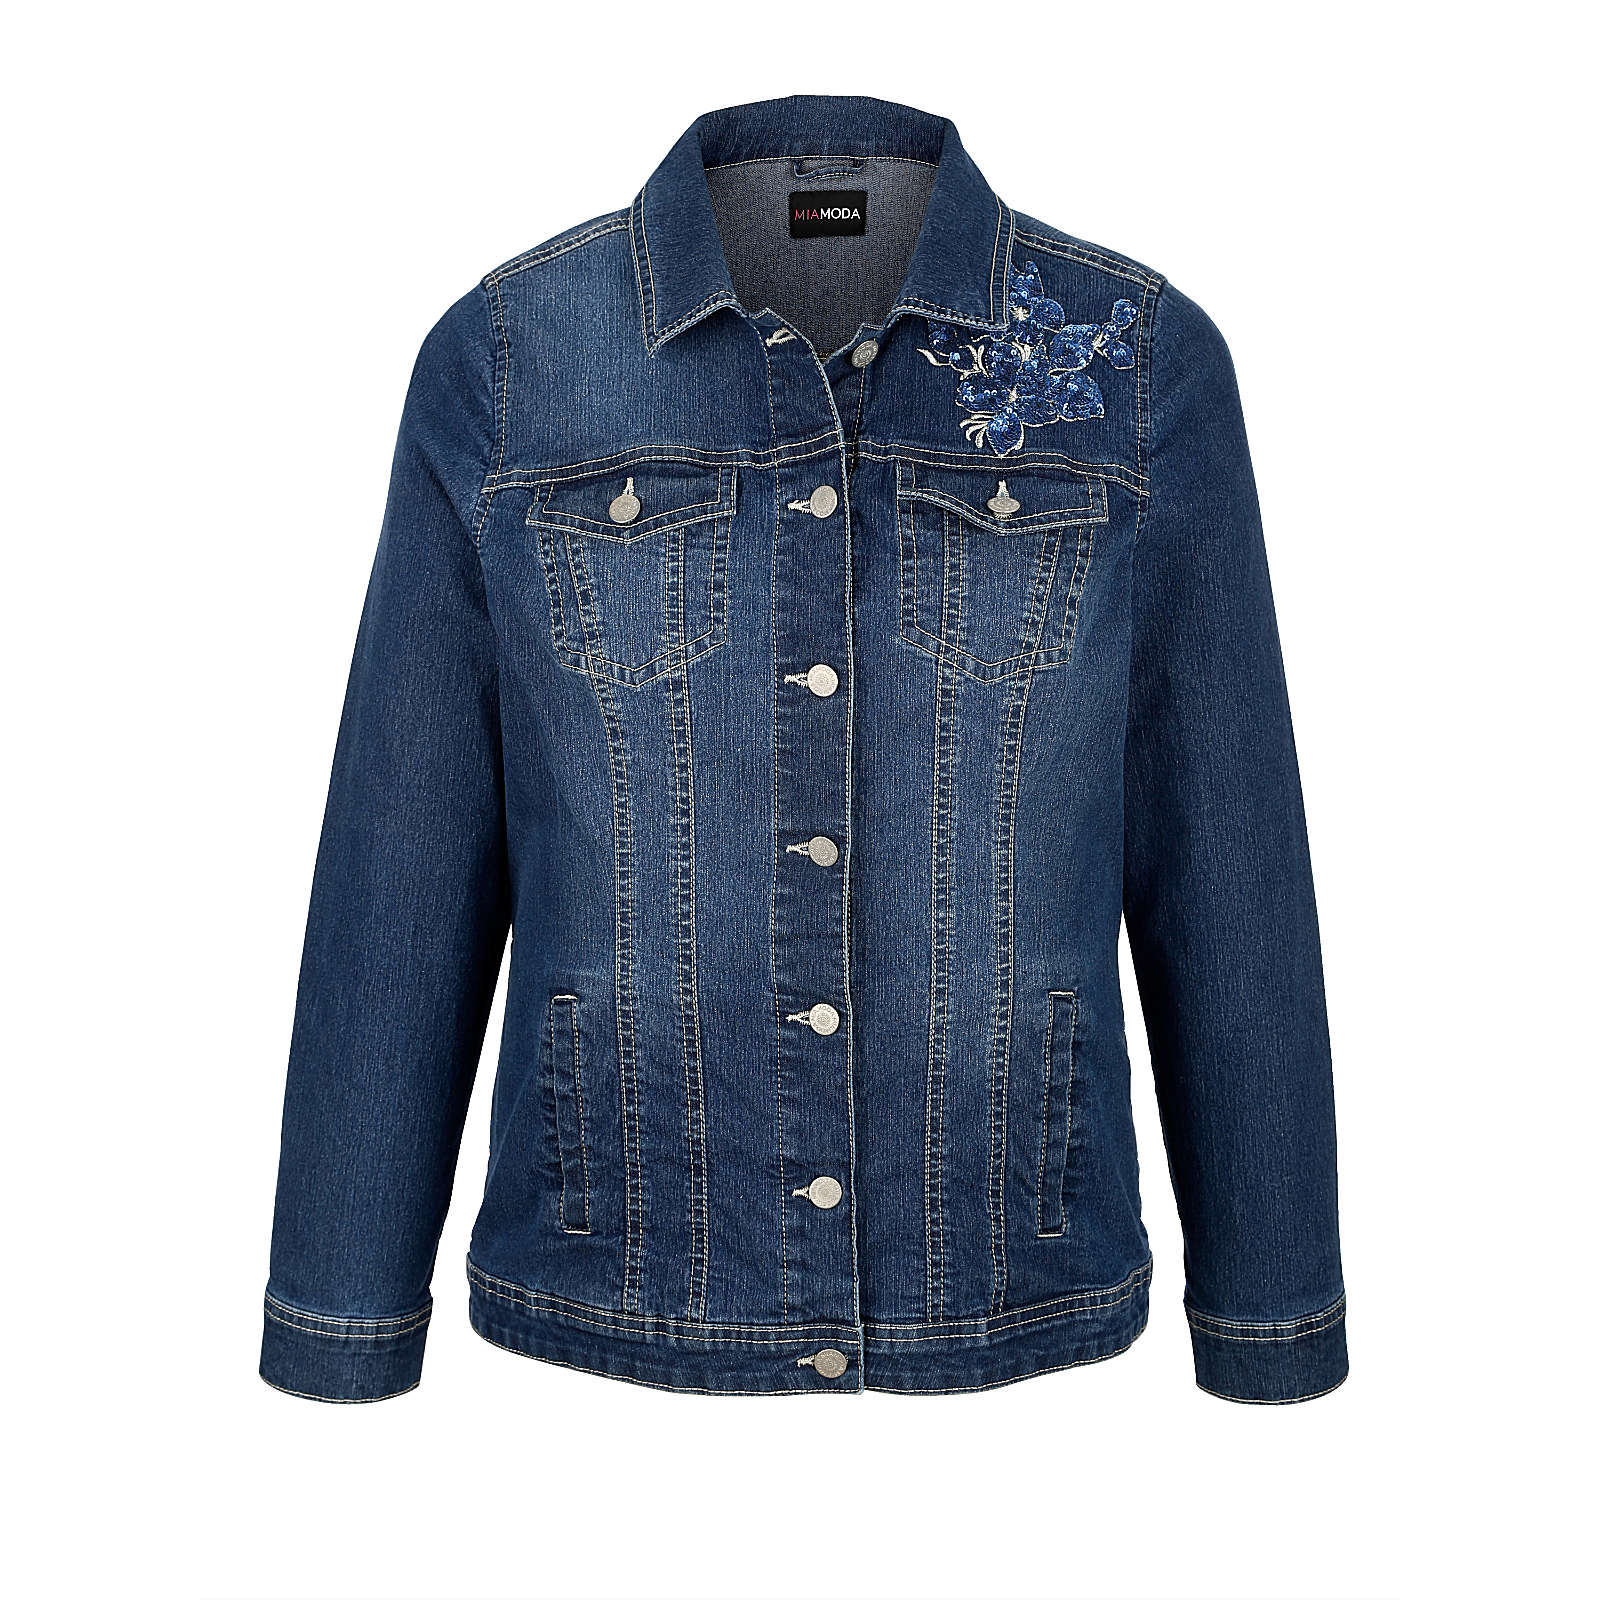 MIAMODA Jeansjacke blue denim Damen Gr. 42